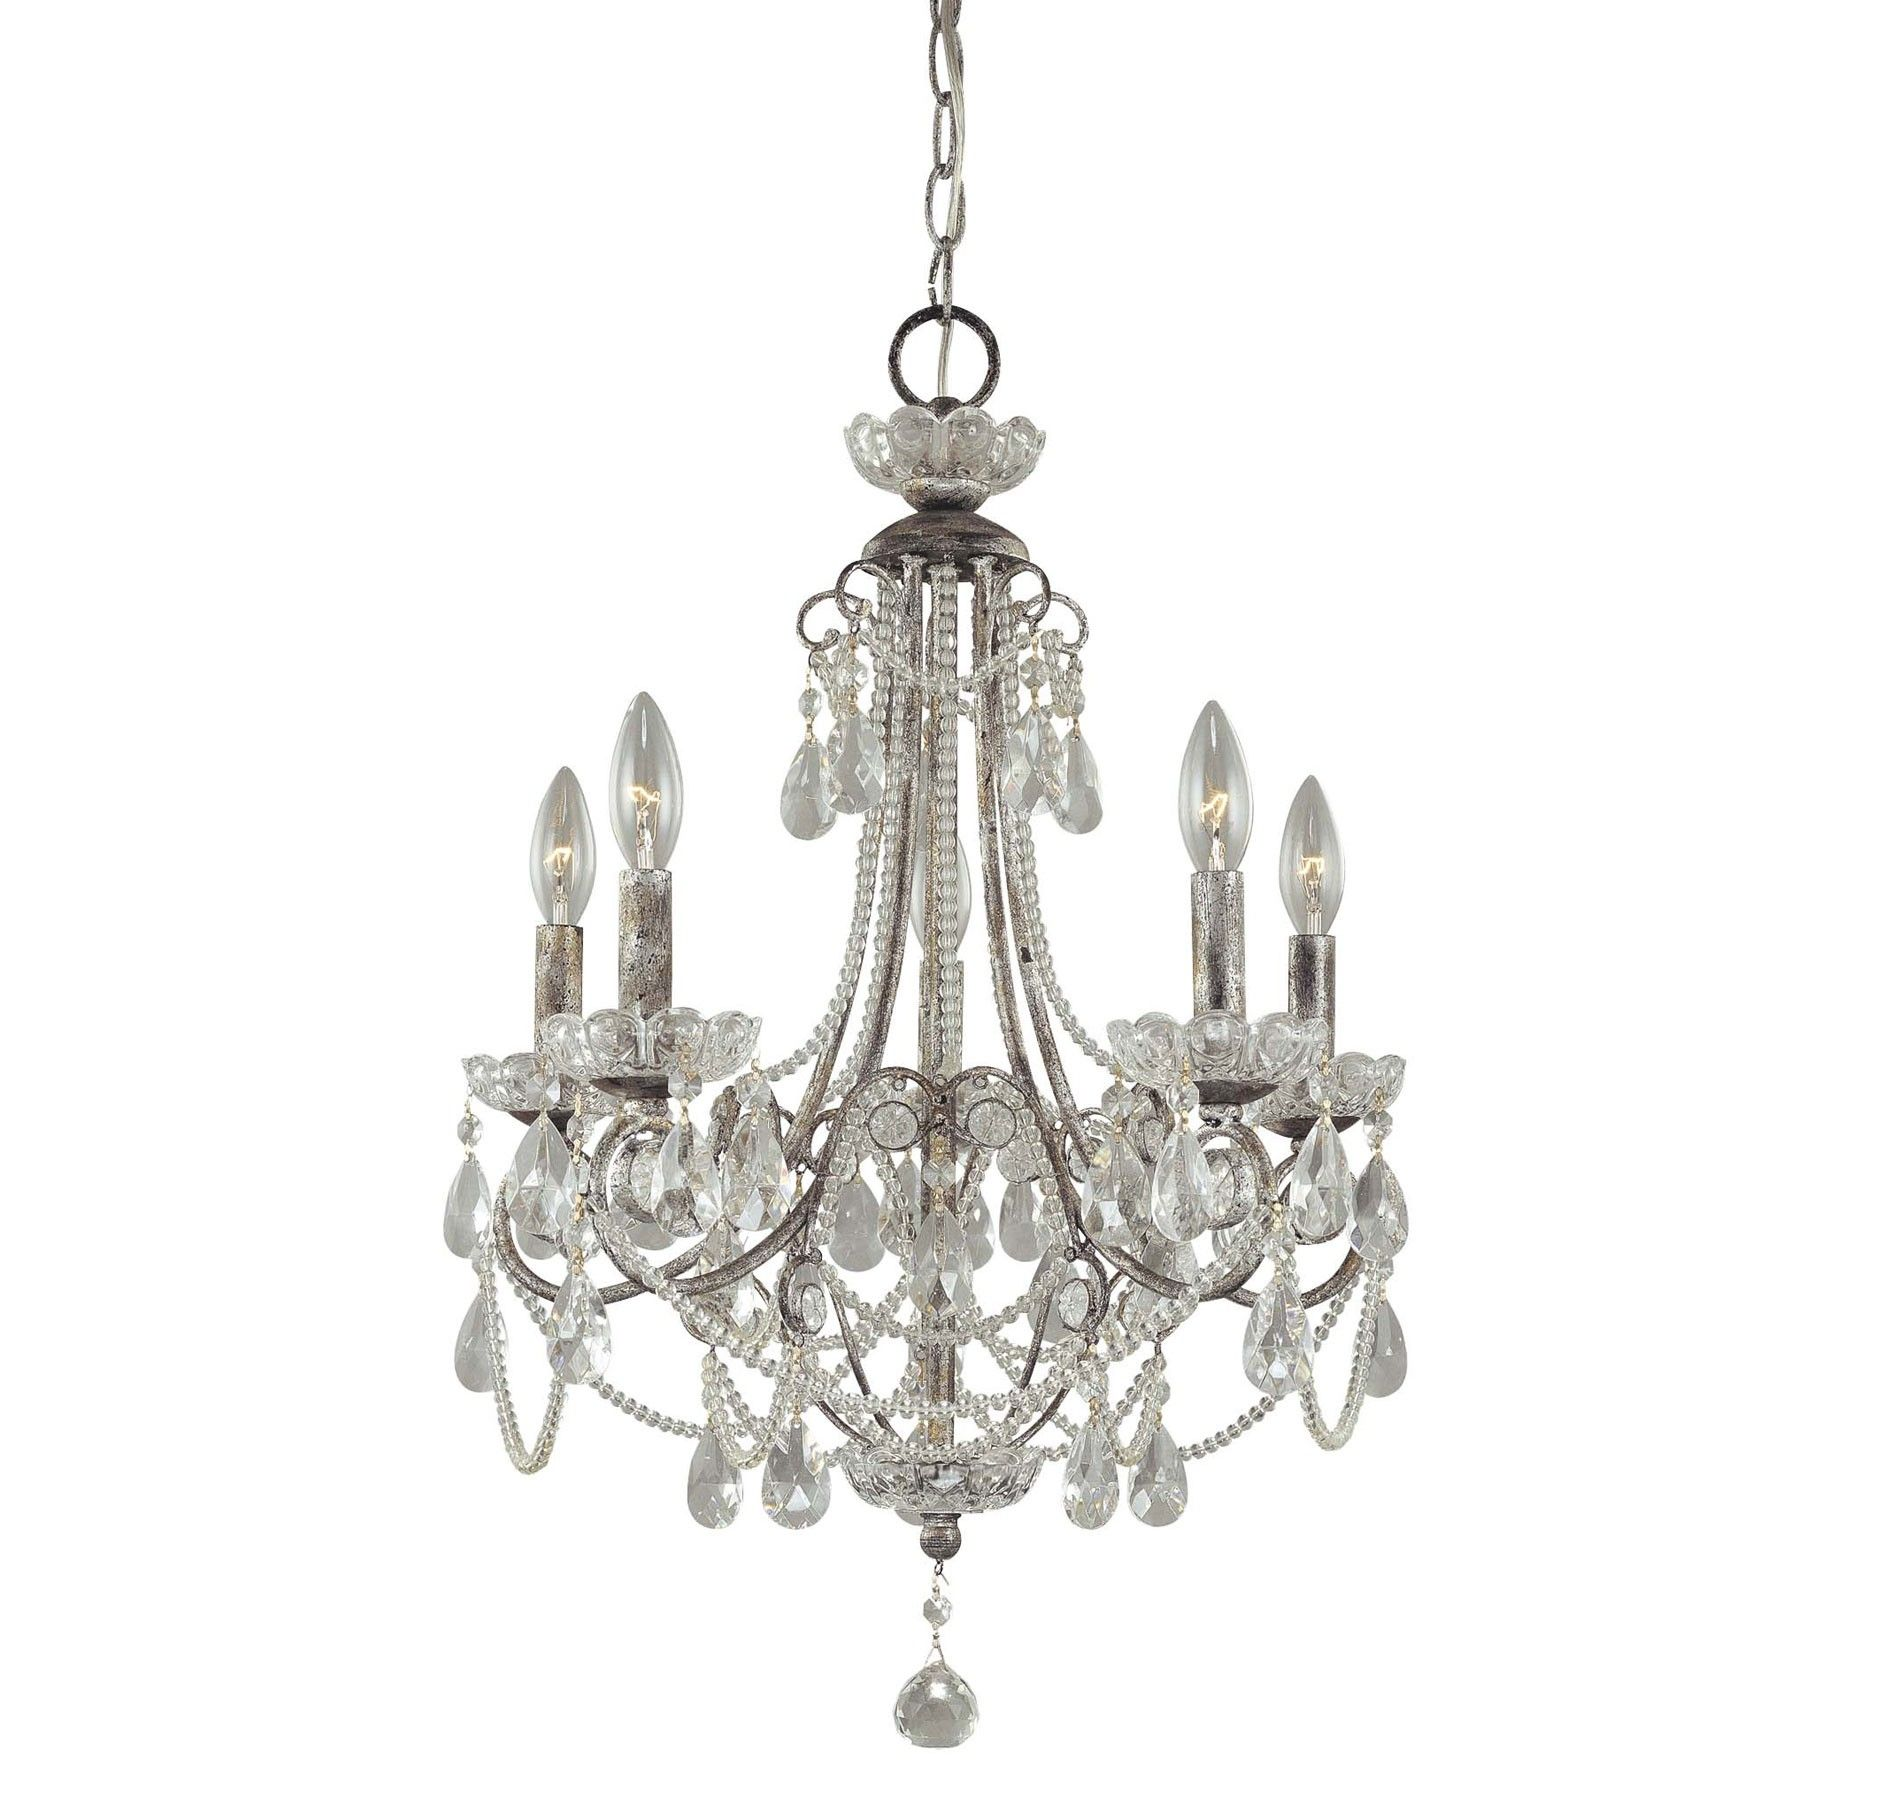 Minka Lavery 5 Light Mini Chandelier in Ceiling Lights